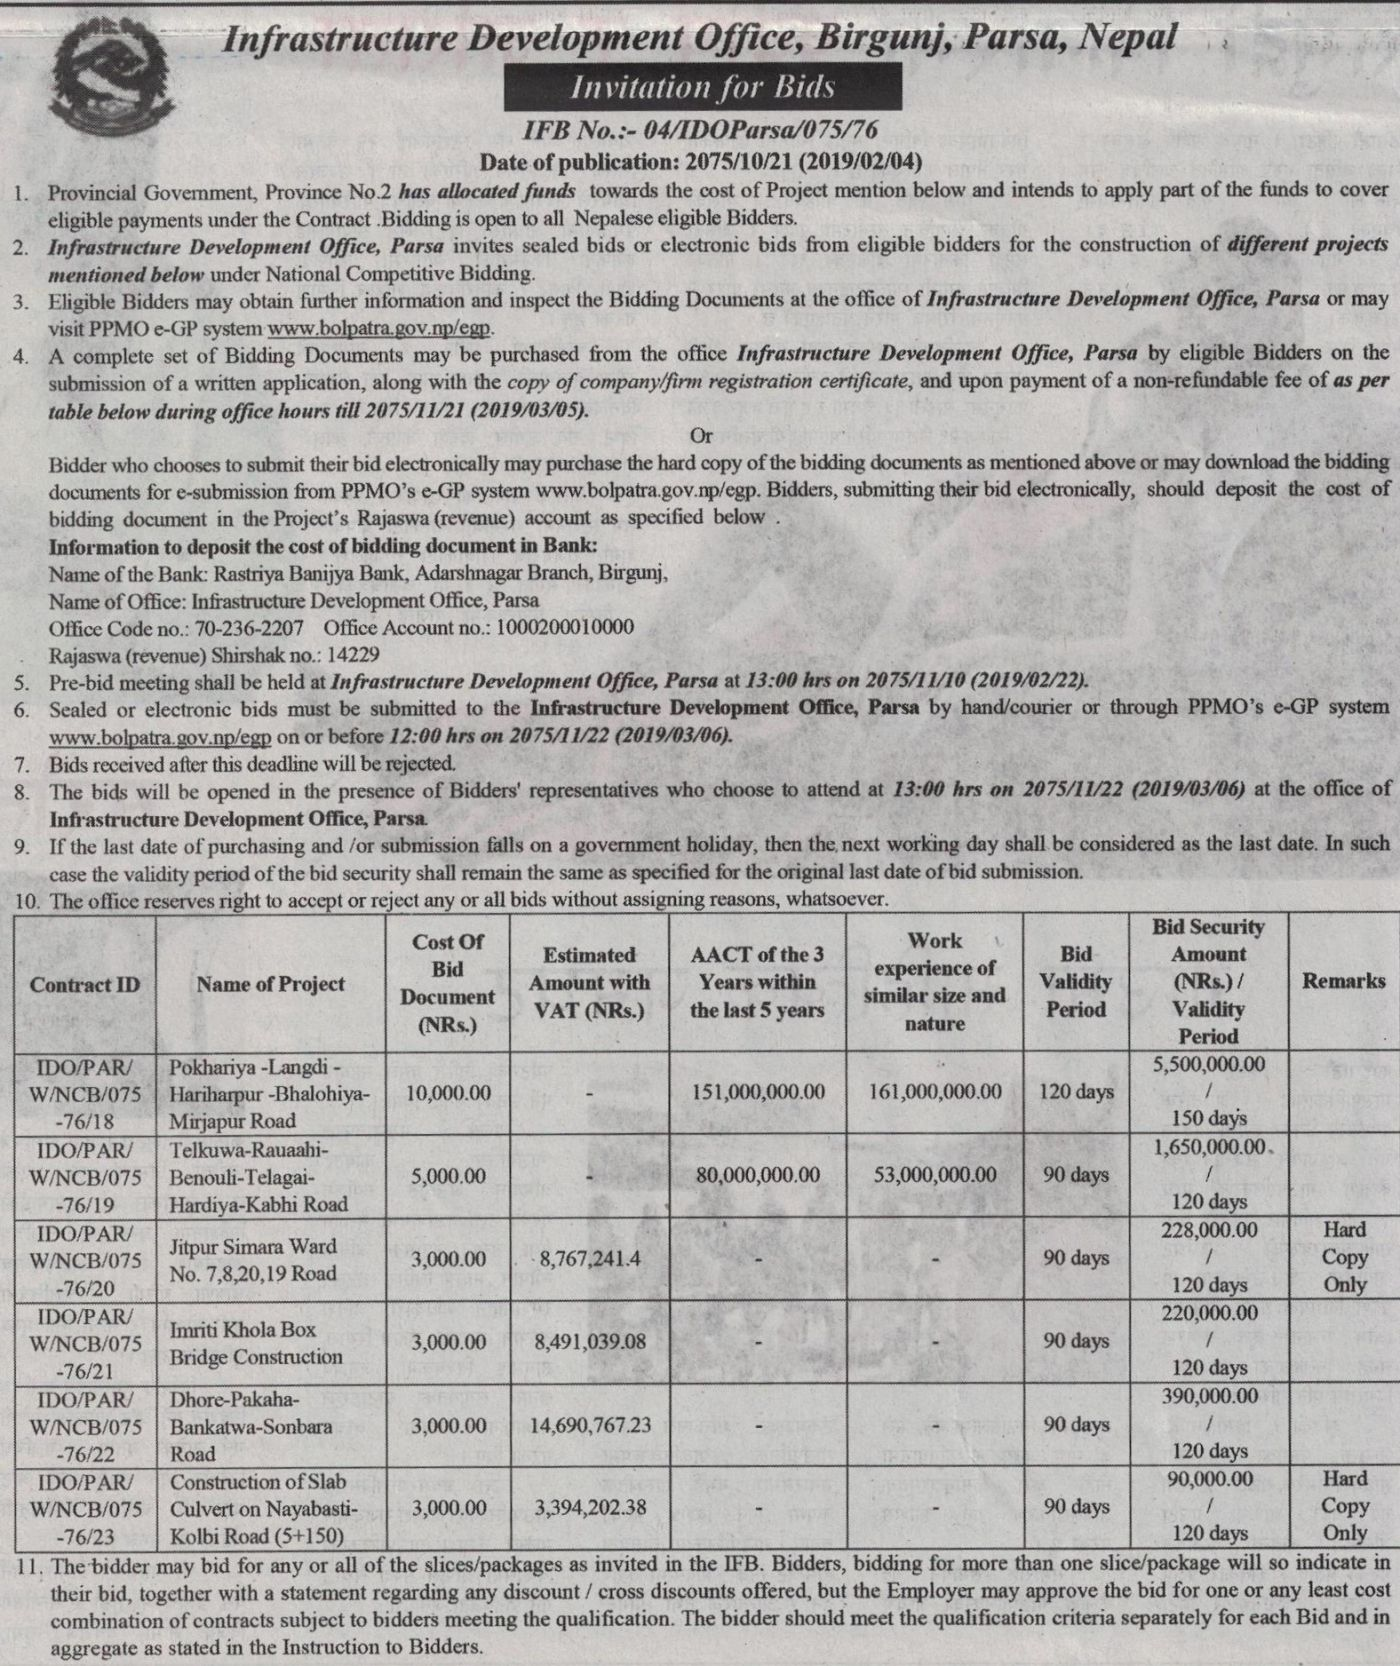 Bids and Tenders Nepal - Invitation for Bids - Construction of Roads